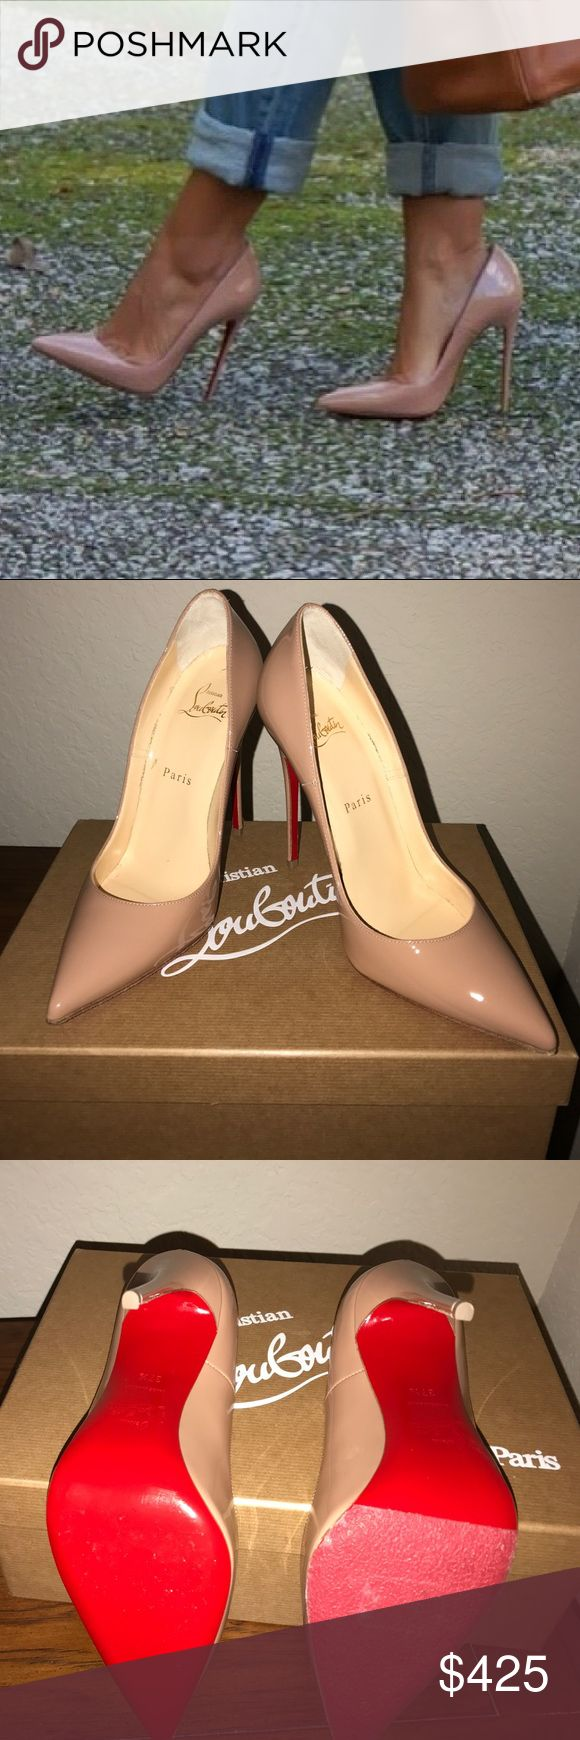 """Christian Louboutin - """"Red Bottoms"""" So Kate Nude patent leather 120s.                        ❤️ Gorgeous heel ❤️ Worn once, minor wear on bottom. Right heel with slip resistant sole protector (my attempt at making the heels easier to walk in). Purchase includes box, dust bag, nude replacement heel taps, and a clear sole protector for the left heel. Christian Louboutin Shoes Heels"""